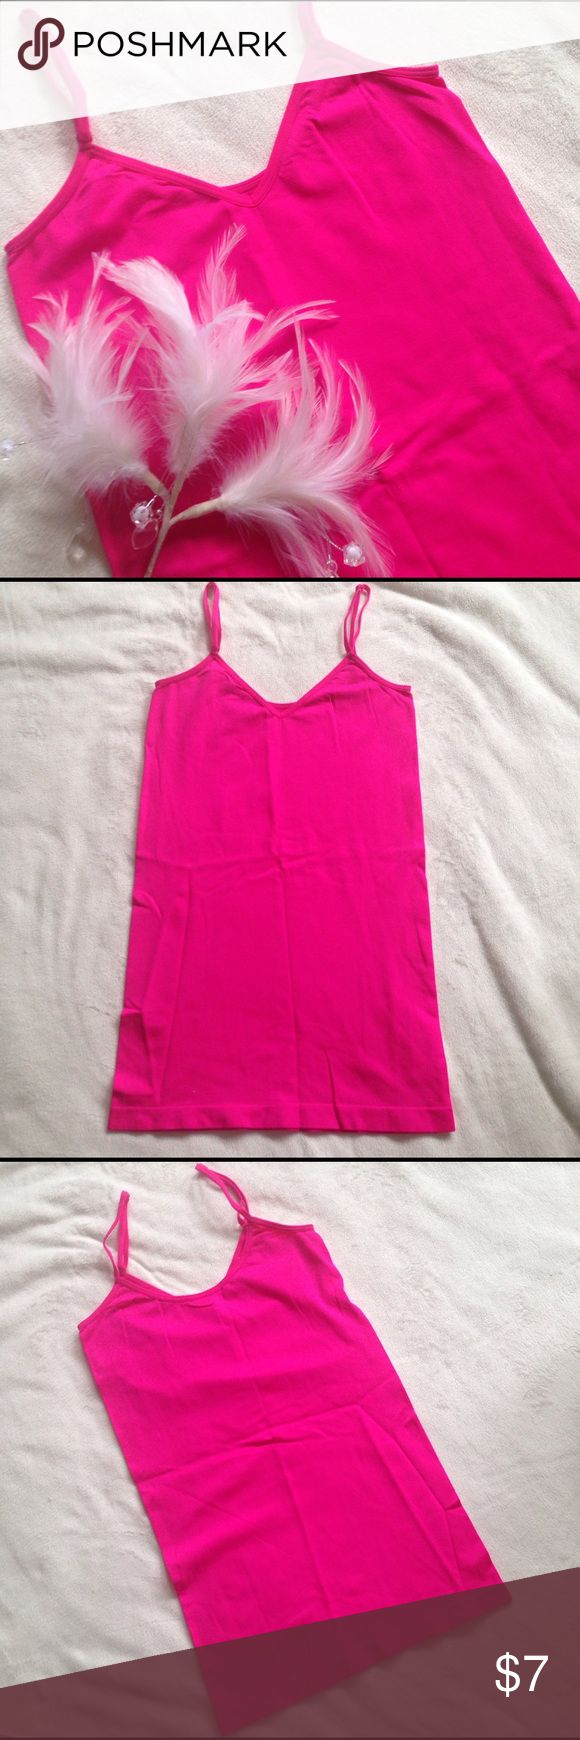 Hot pink seamless cami Vibrant hot pink seamless cami with adjustable straps. Perfect for v-necks or scoop necks as cami can be switched back and forth for either neckline🌺 The best shade of hot pink for a splash of neon color.💕Size and materials tag is removed but is s/m and feels like nylon blend. Tops Camisoles